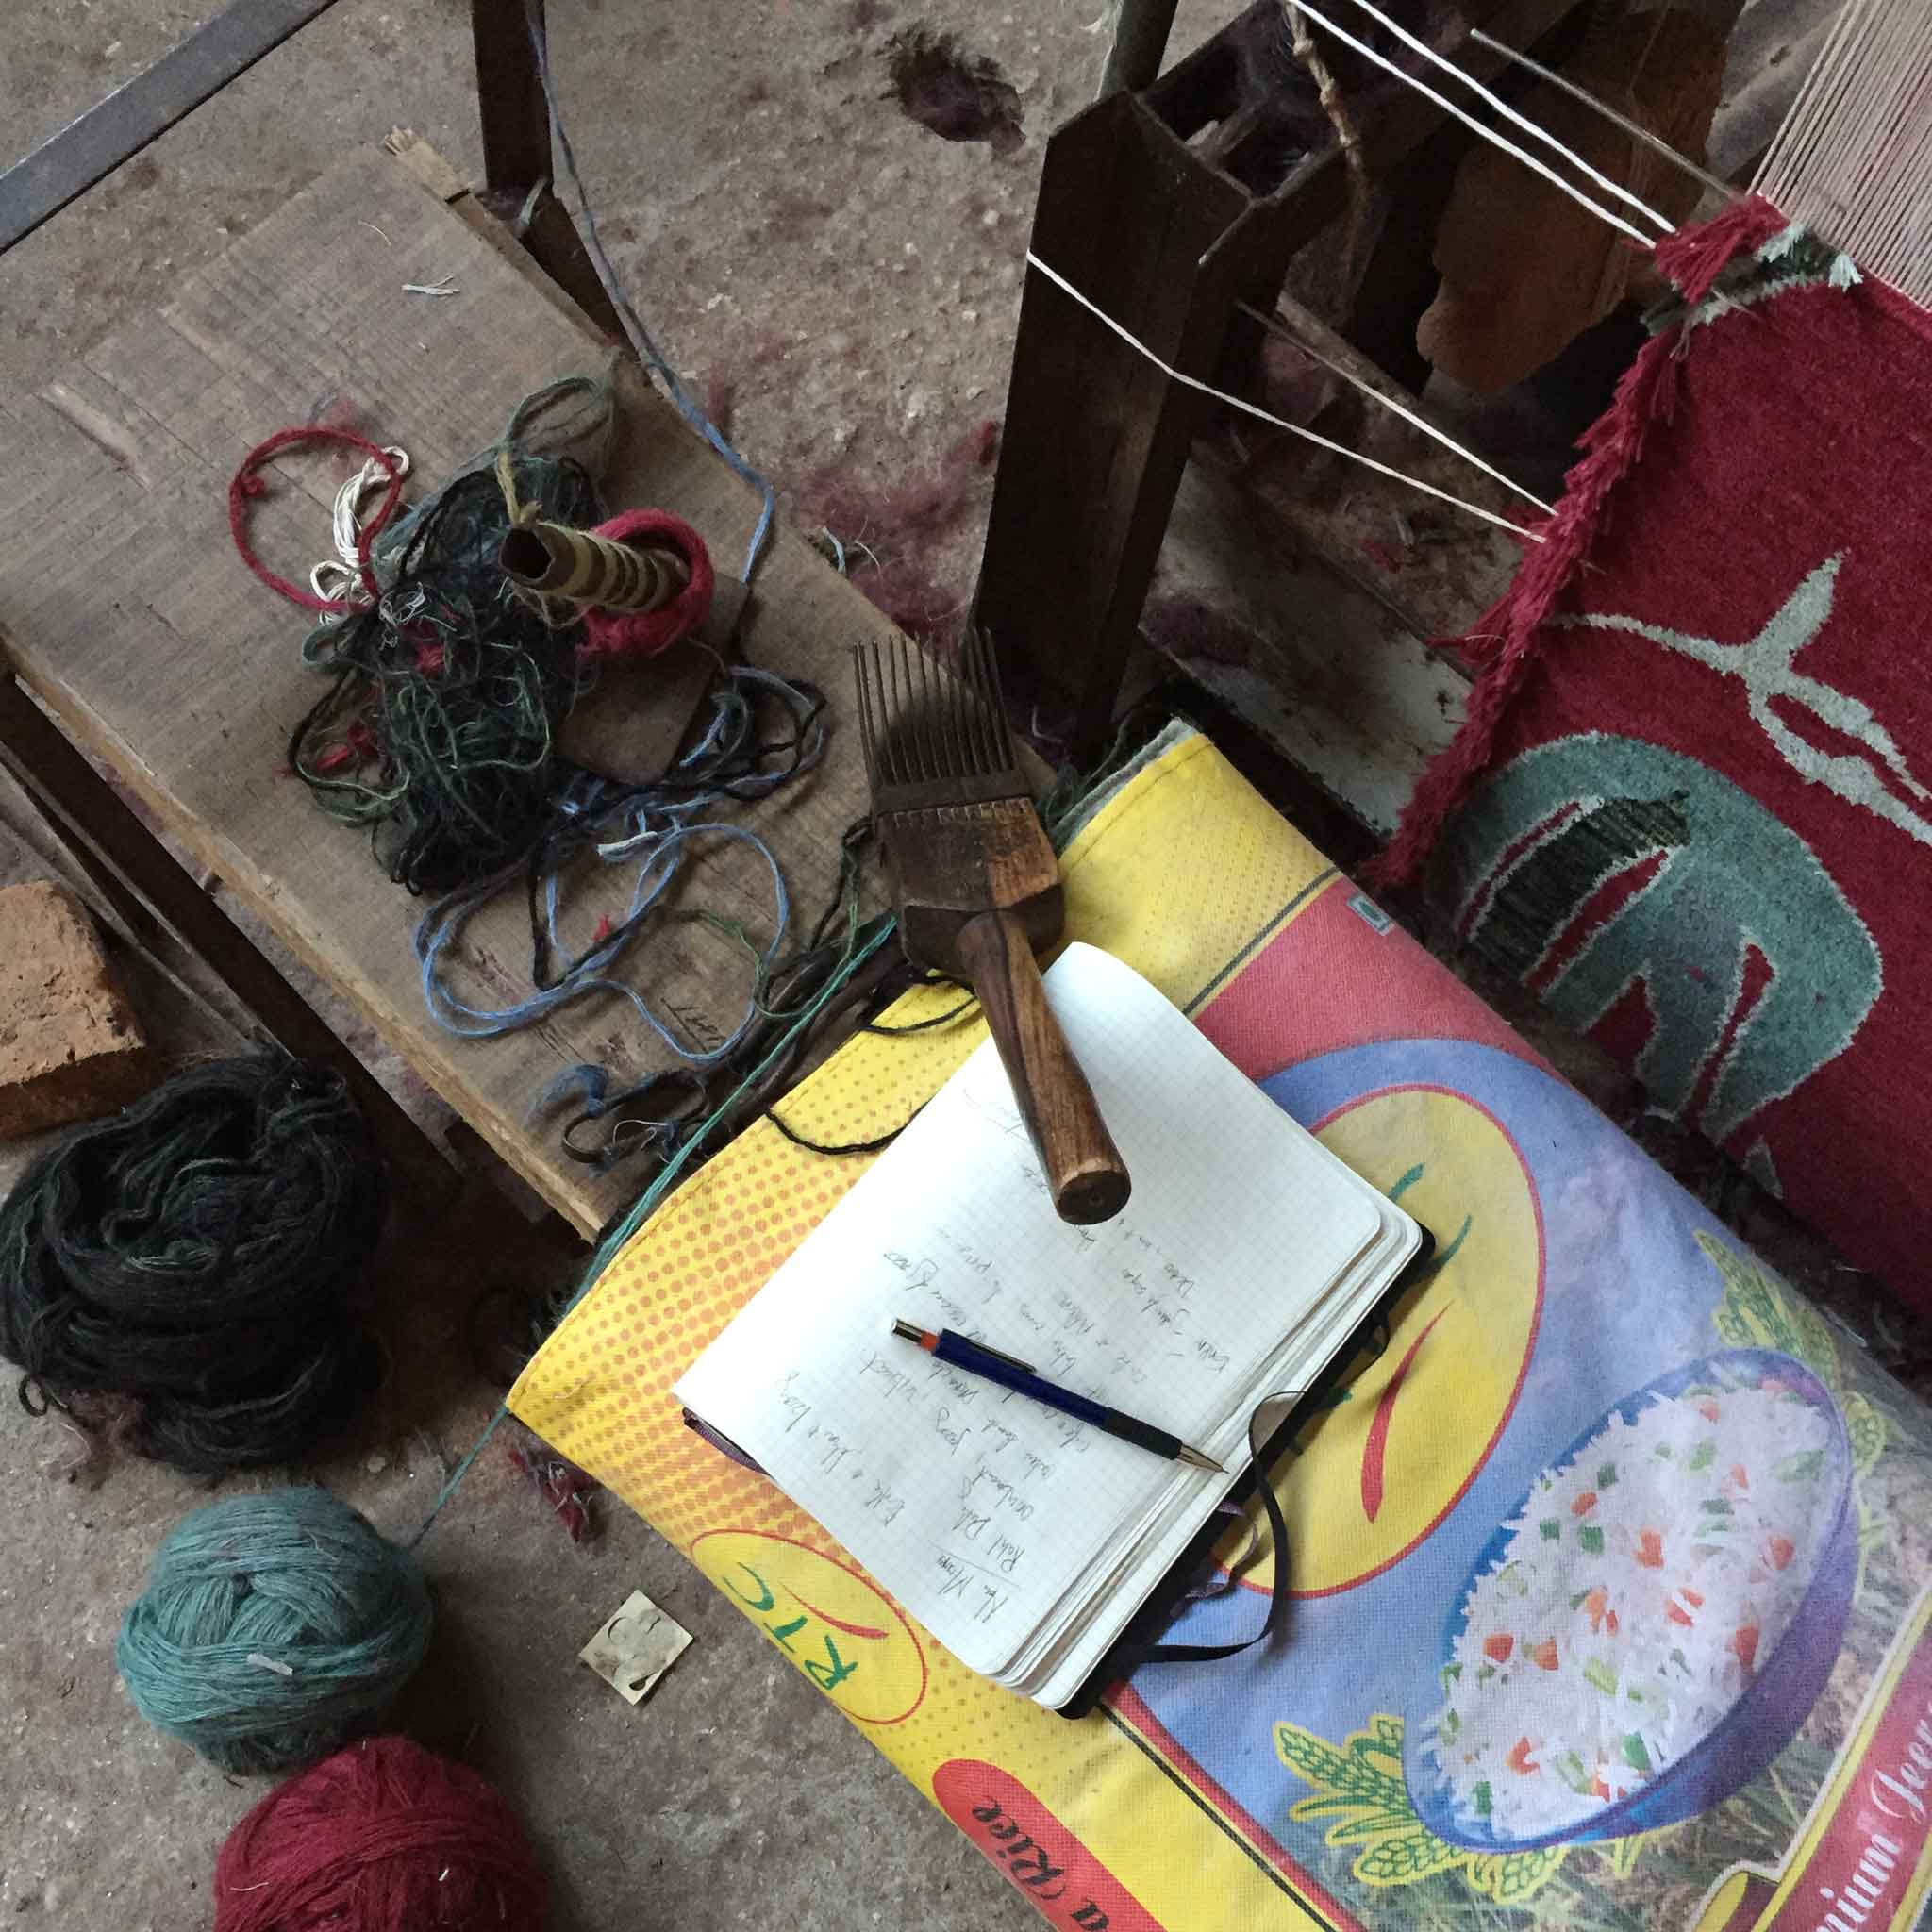 An impromptu and non-staged still life in which writer meets weaver. 'Camara' in colour 'Oxblood' by New Moon is visible on loom at the right. | Image courtesy of The Ruggist.